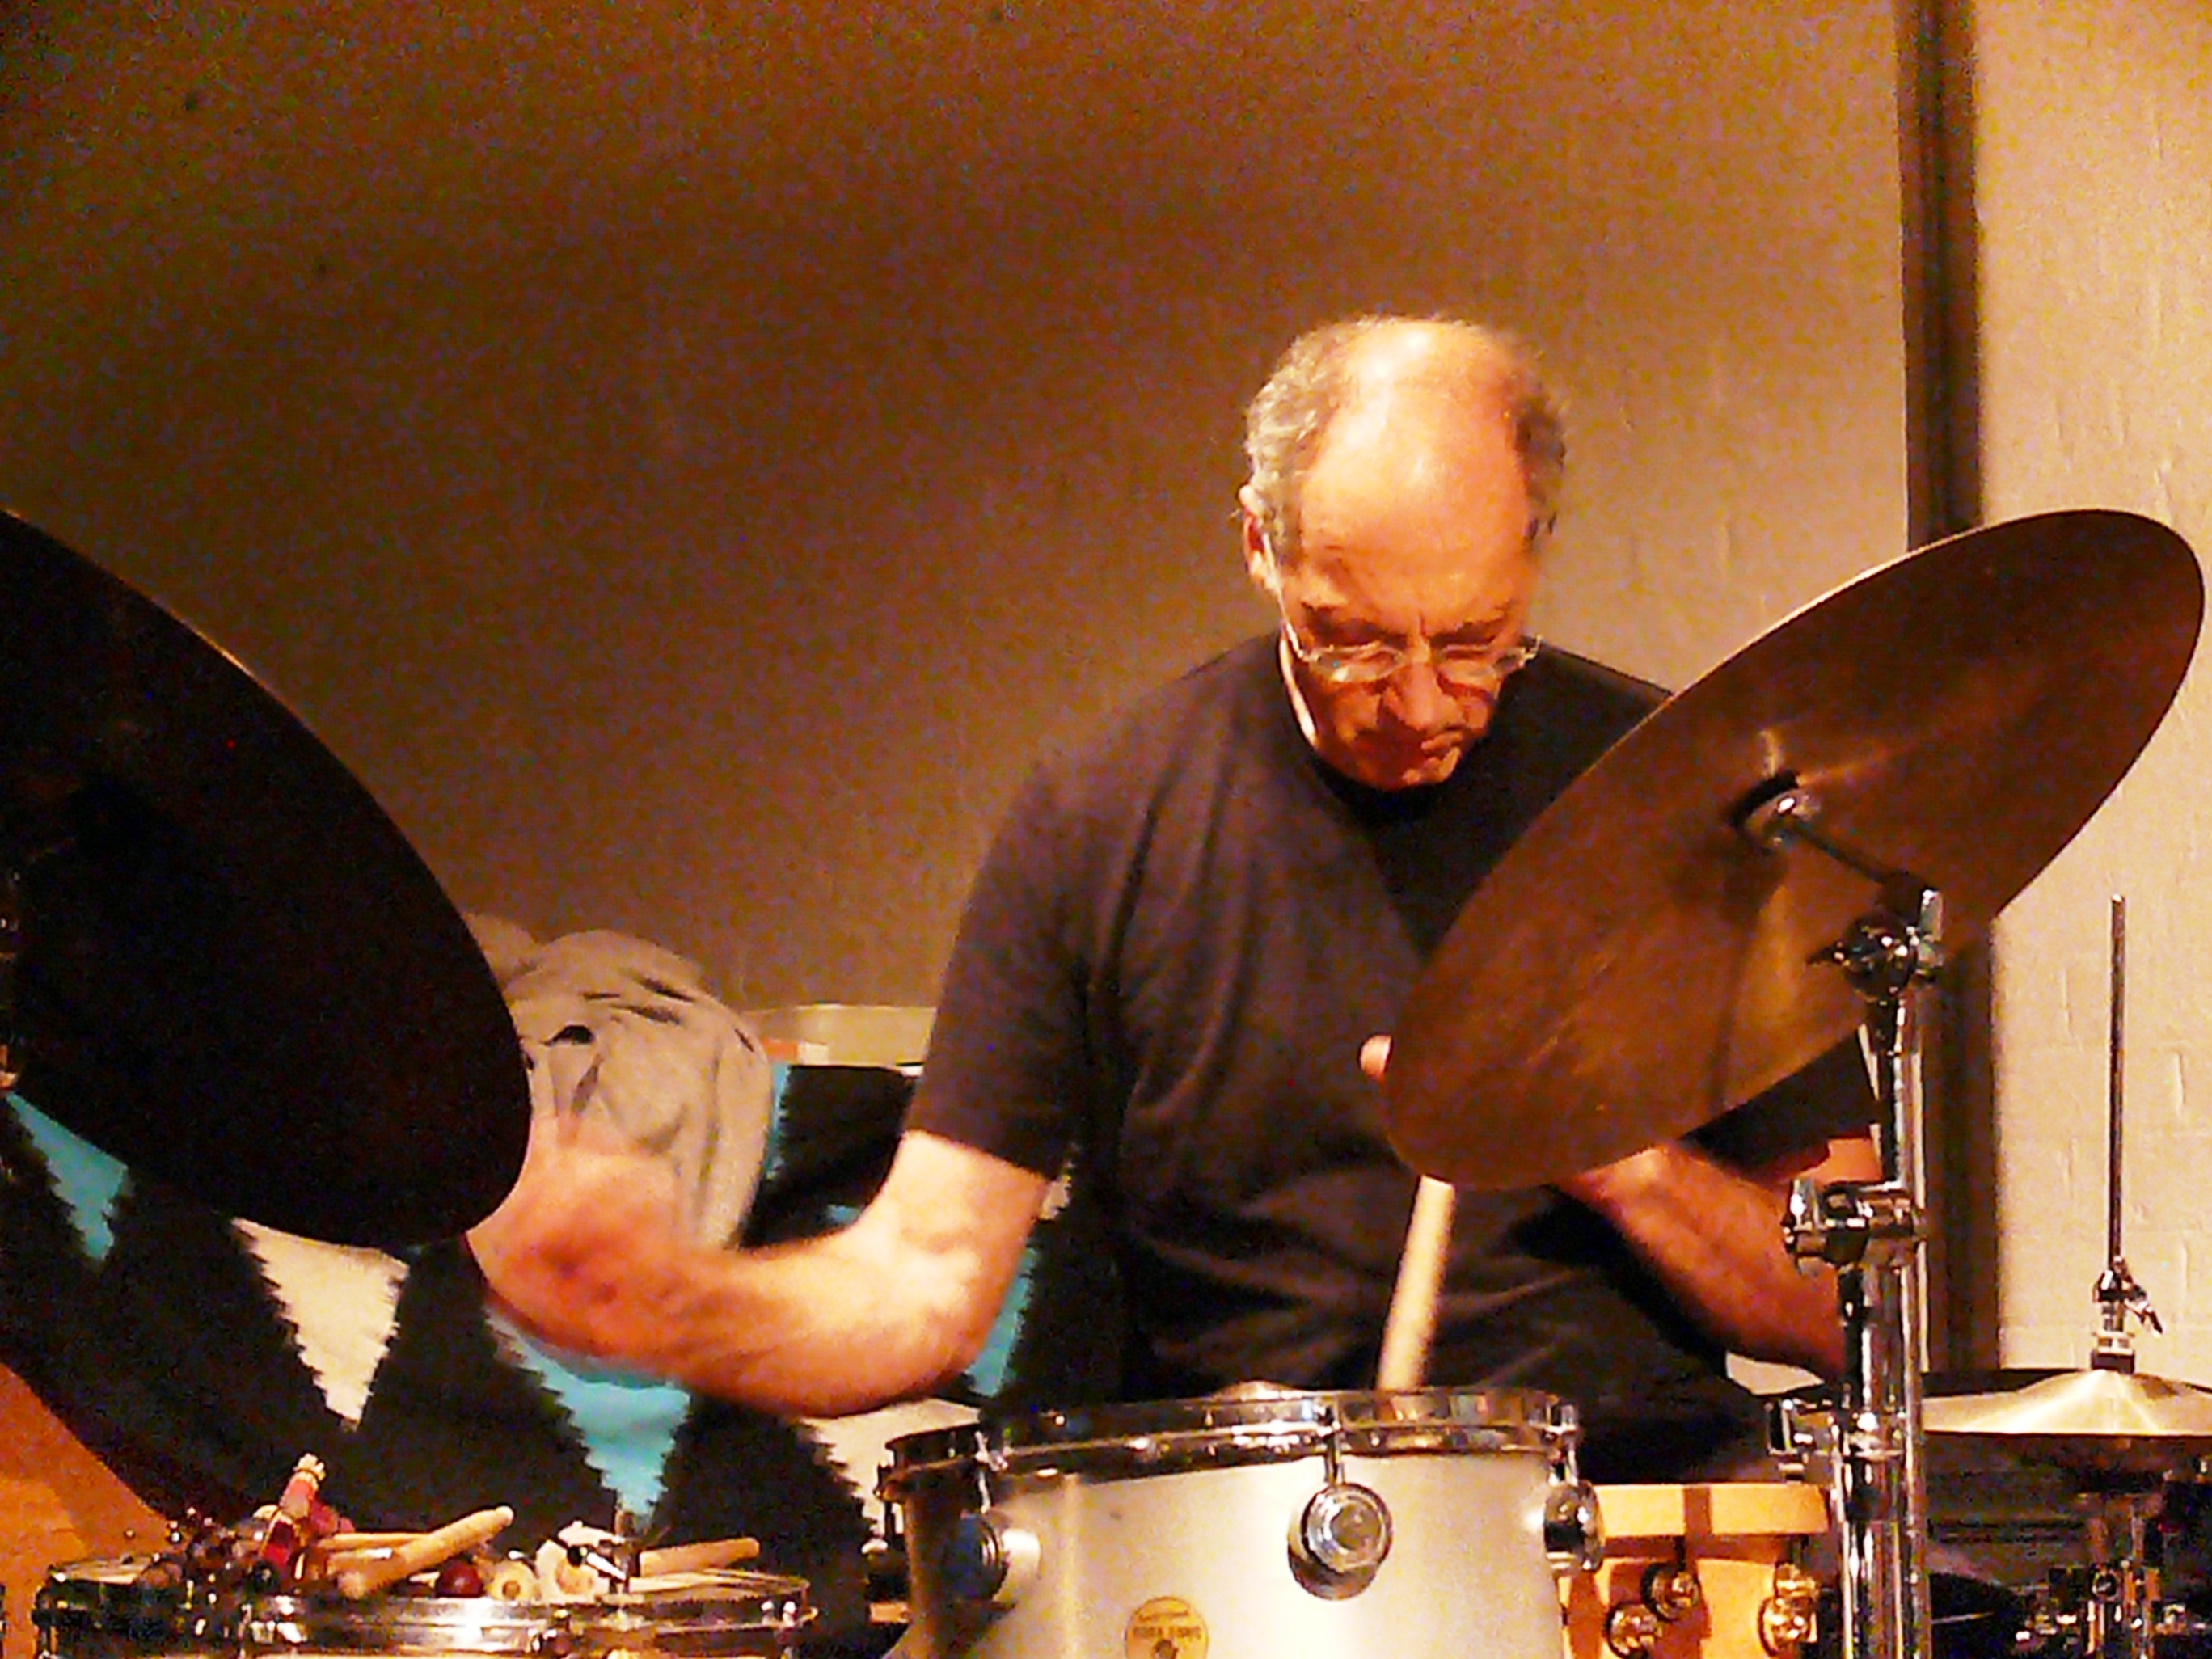 Paul Lytton at Cafe Oto, London in May 2011